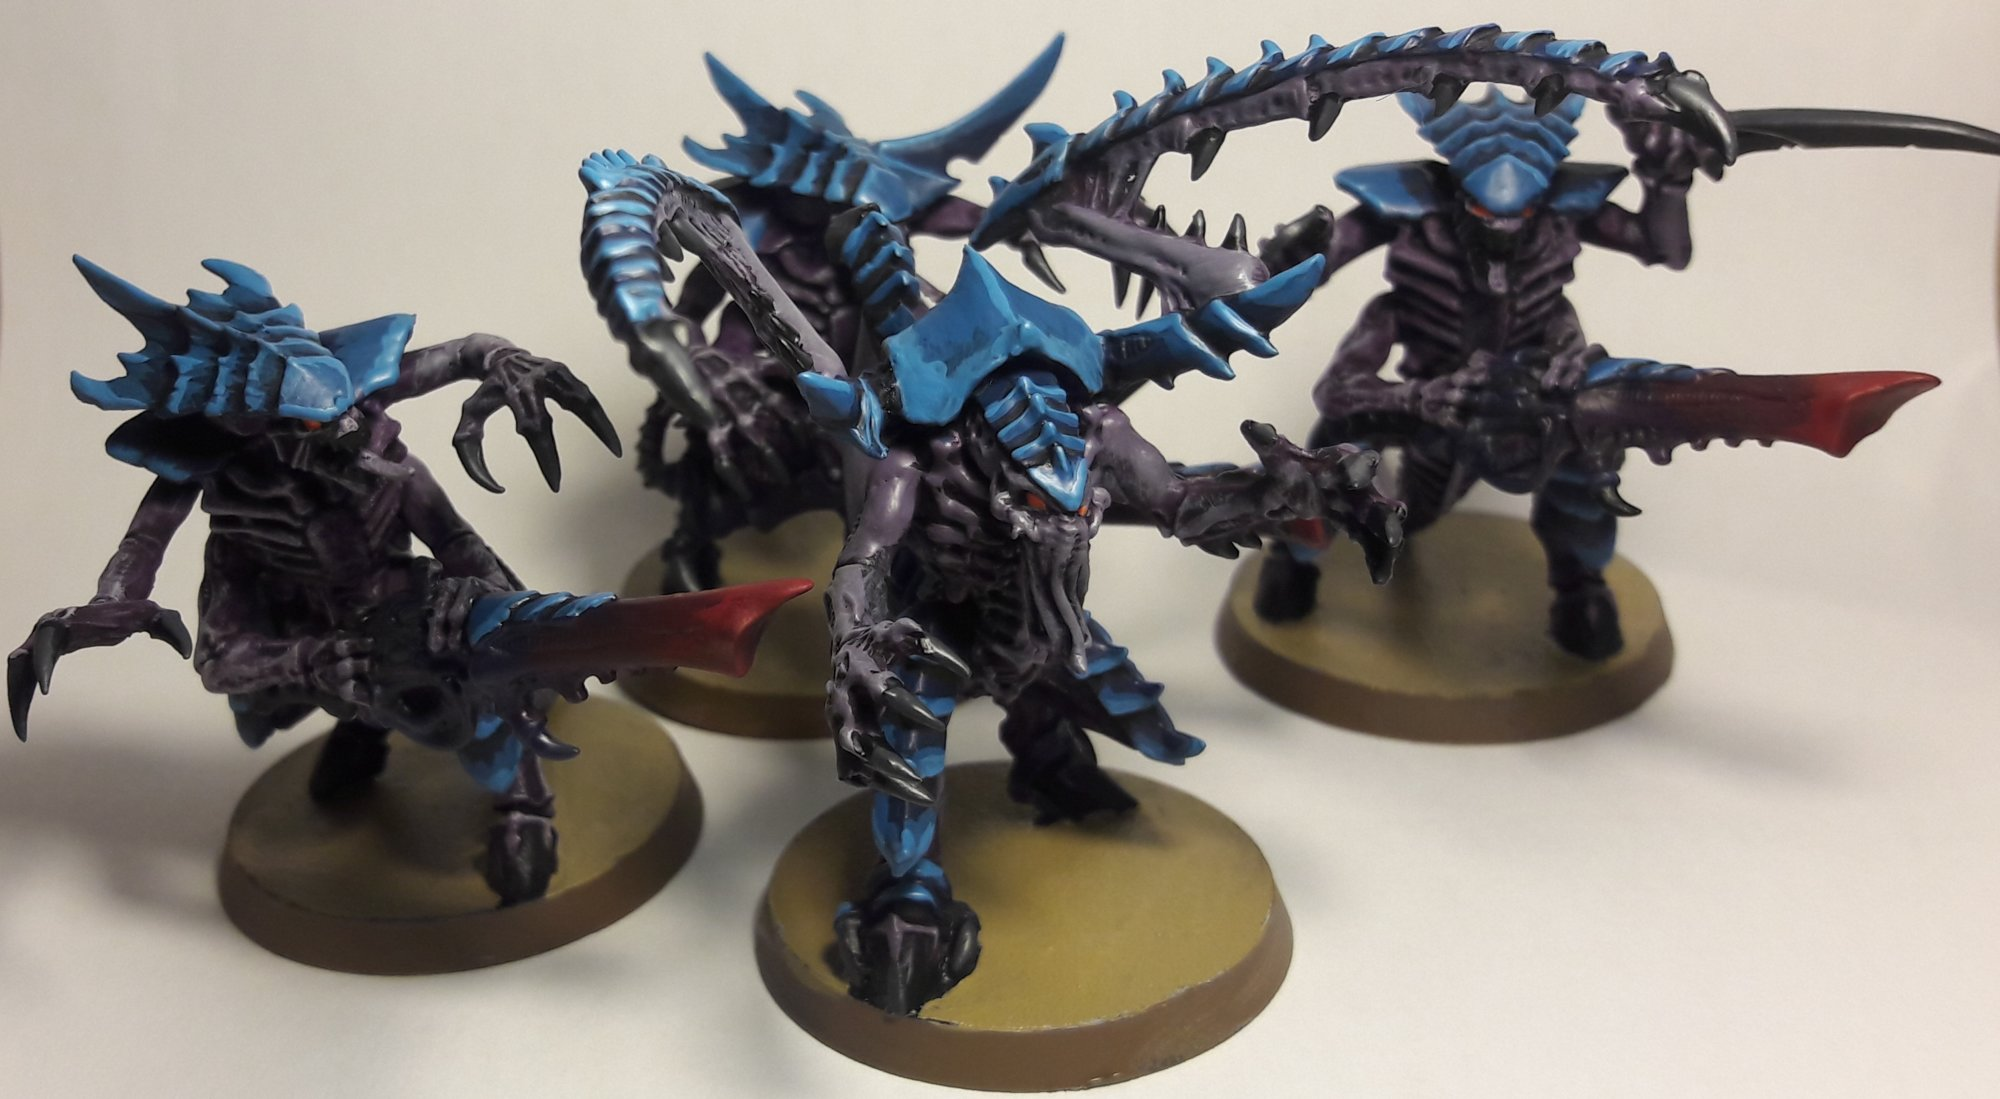 Tyranids: the big guys